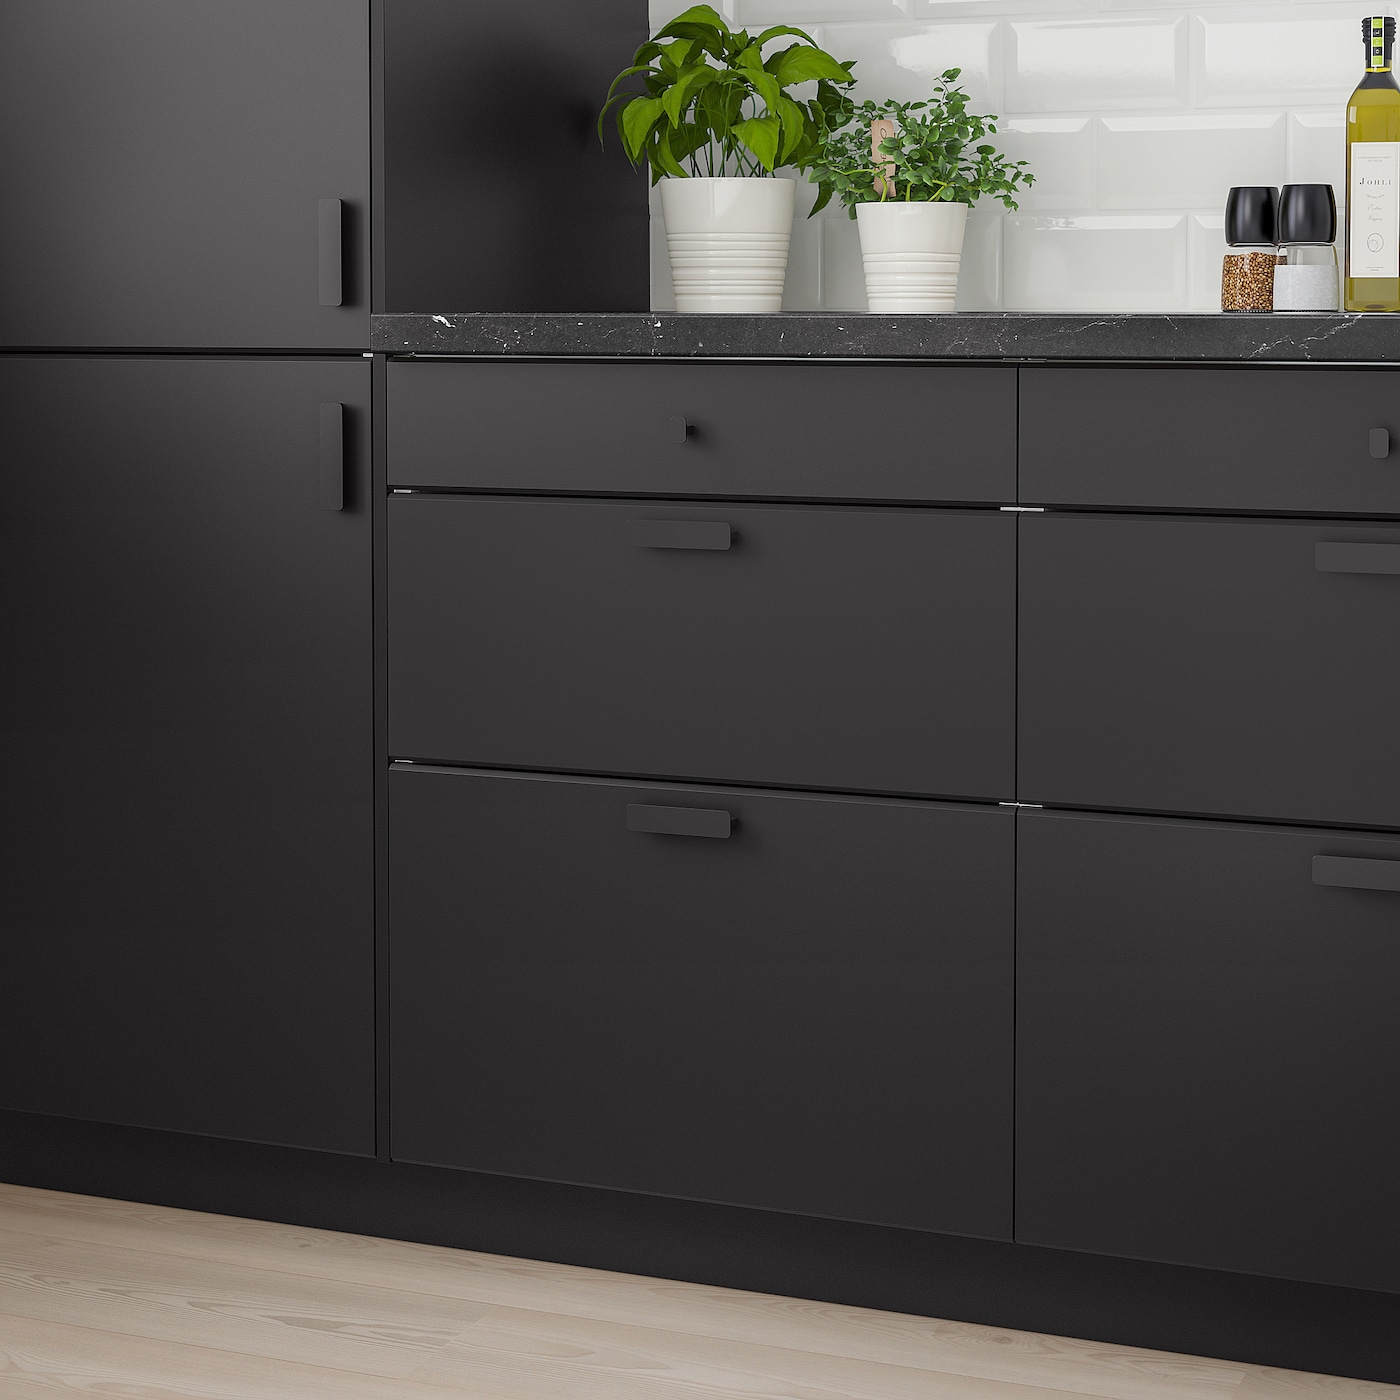 KUNGSBACKA Drawer front, anthracite, 30x15 ""